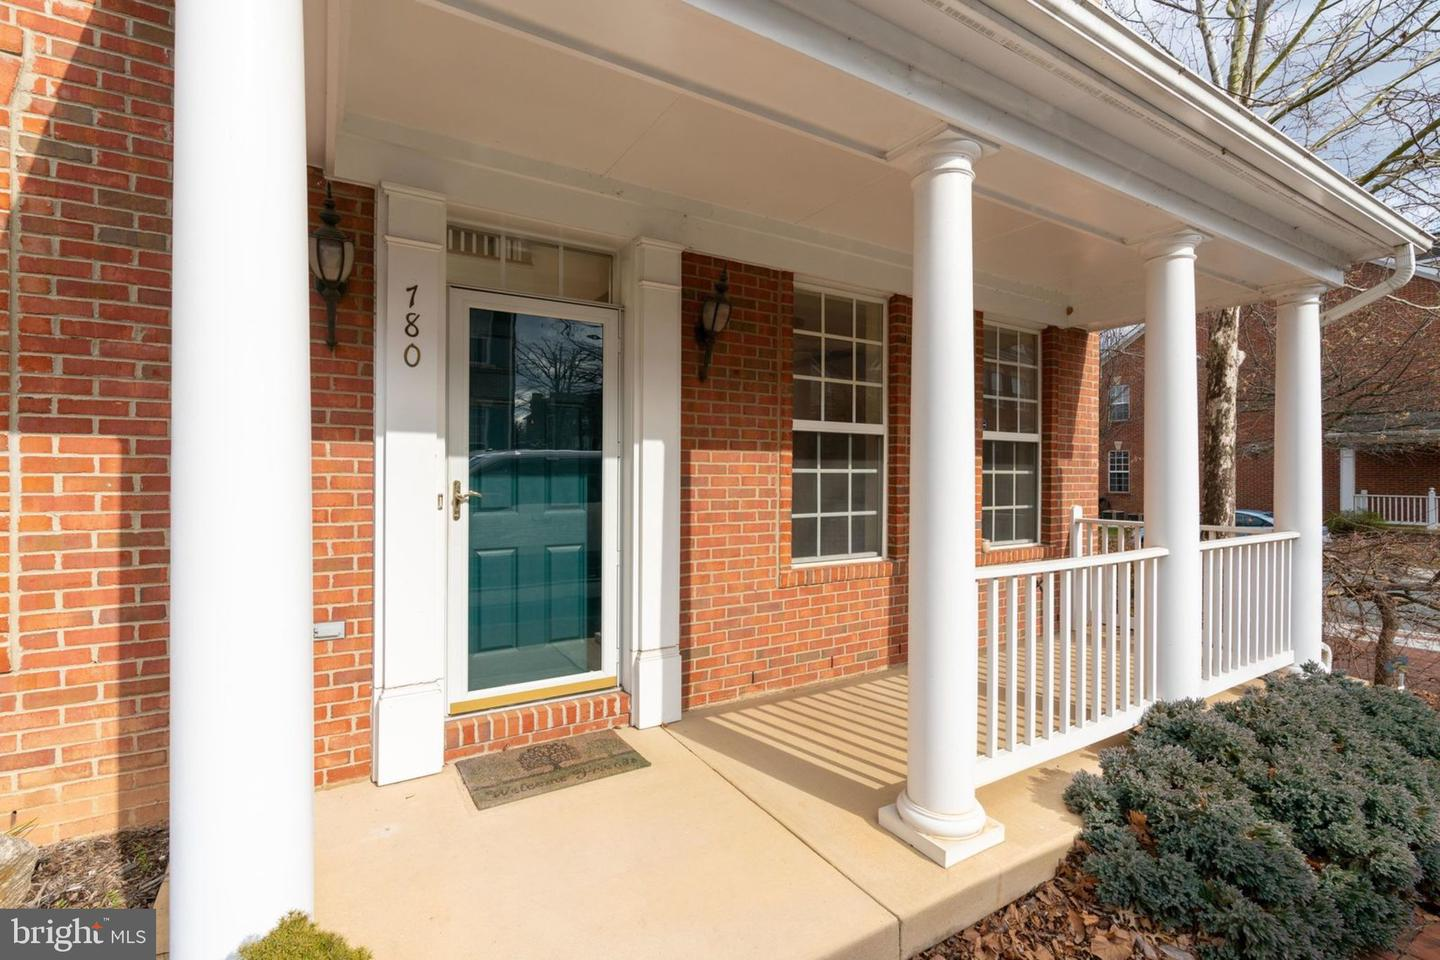 Additional photo for property listing at 780 Monument Ave 780 Monument Ave Woodbridge, Virginia 22191 United States